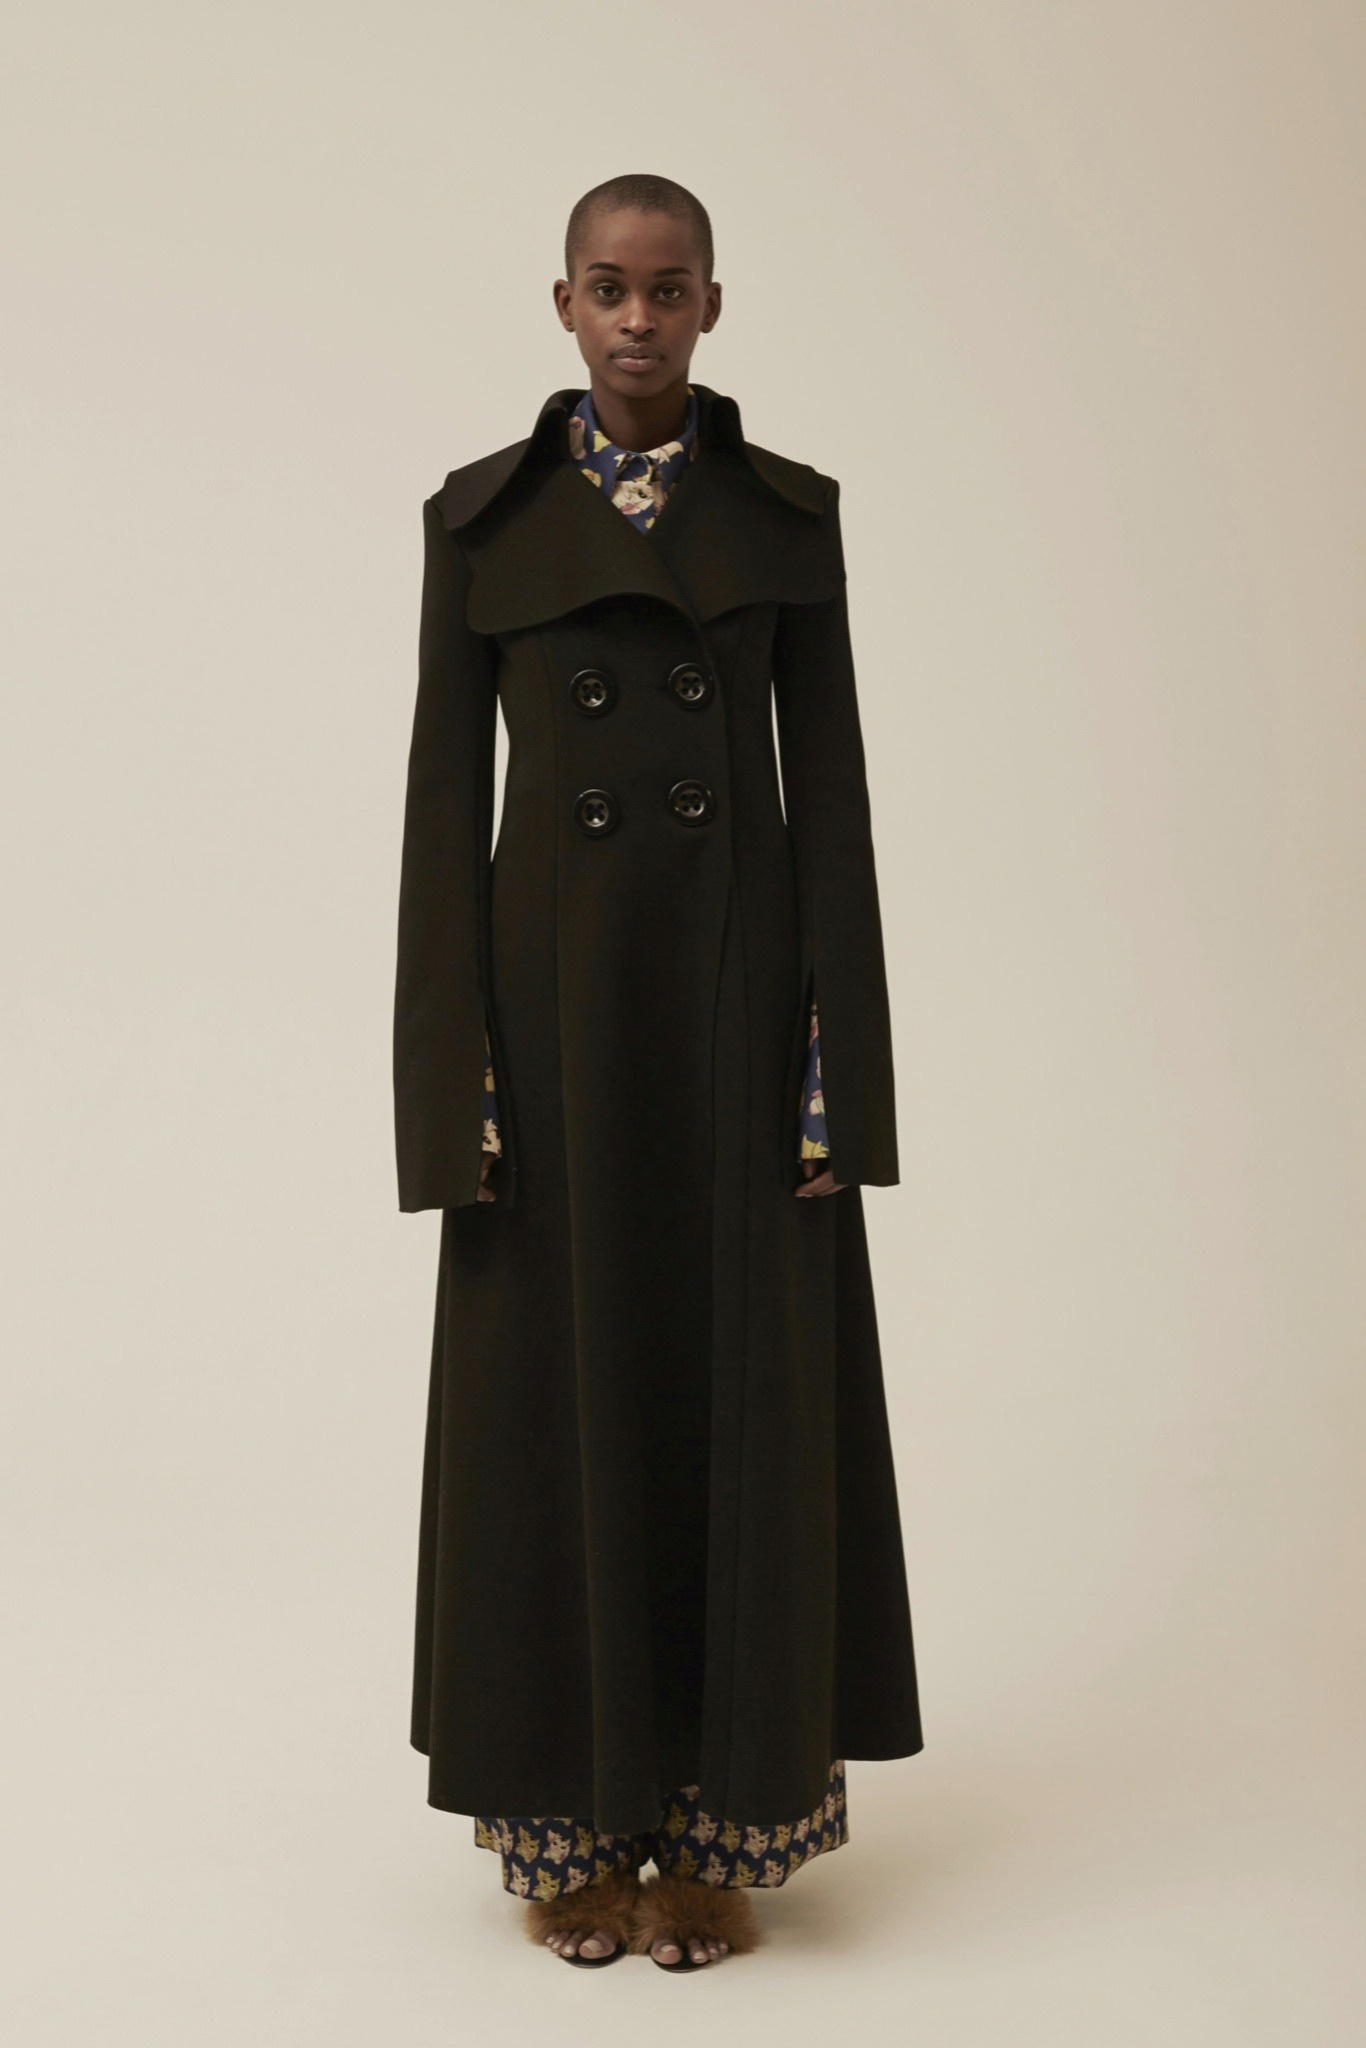 style trends: long coats for winter 2018 vladgma